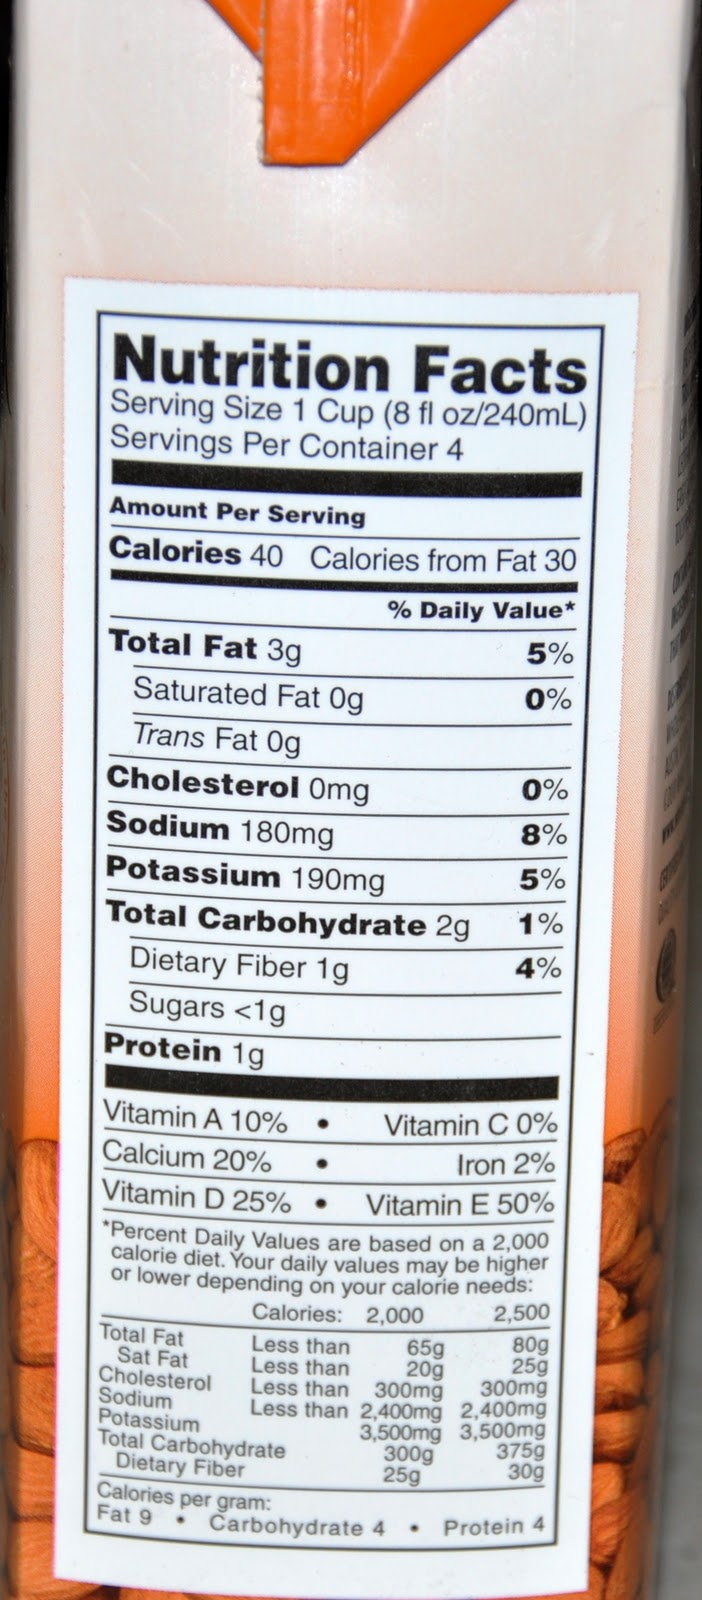 Ingredients In Whole Foods Almond Milk